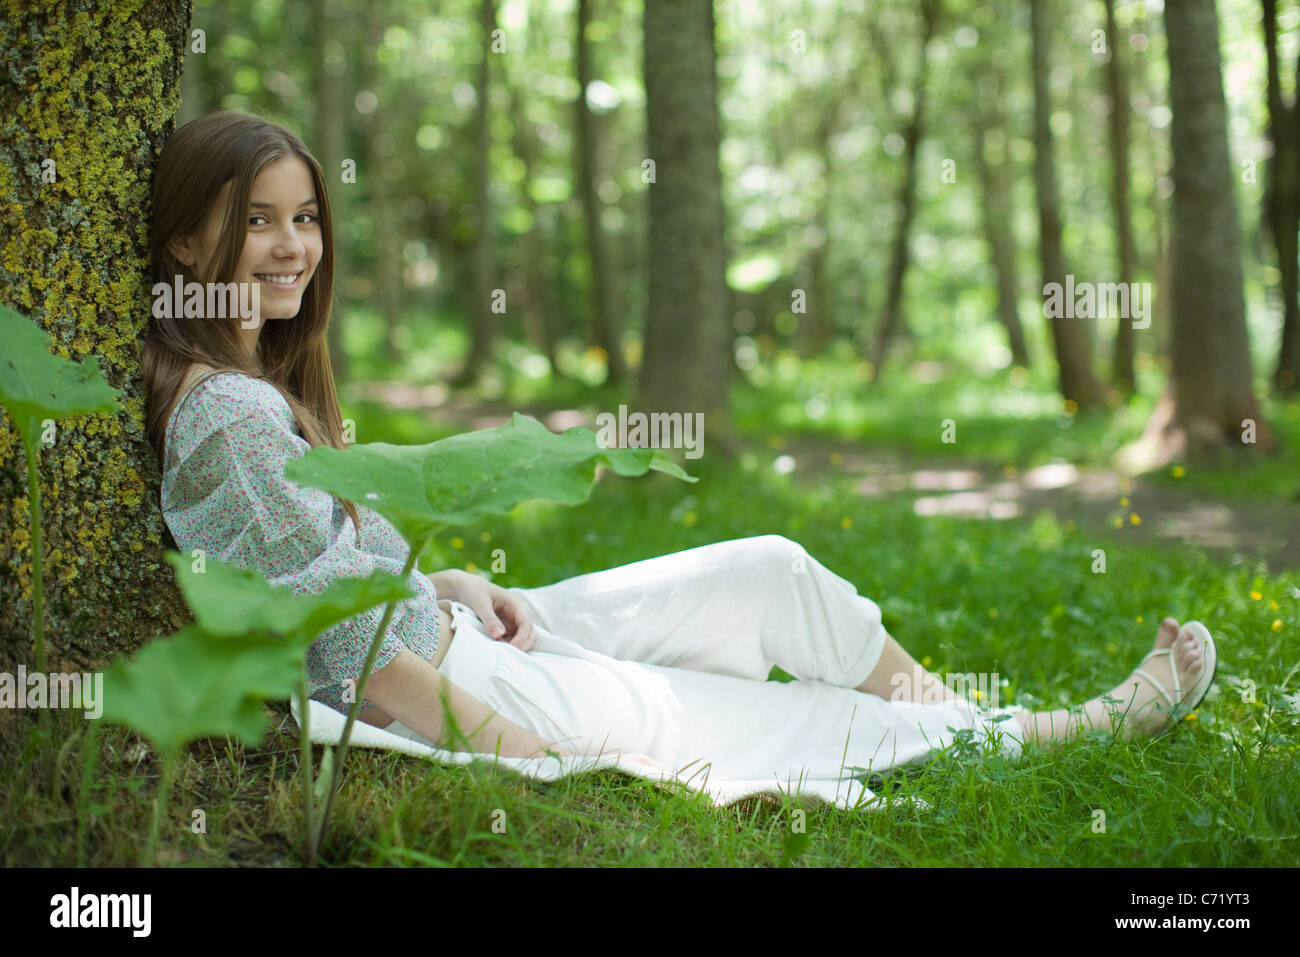 Young woman sitting against tree in woods, portrait - Stock Image